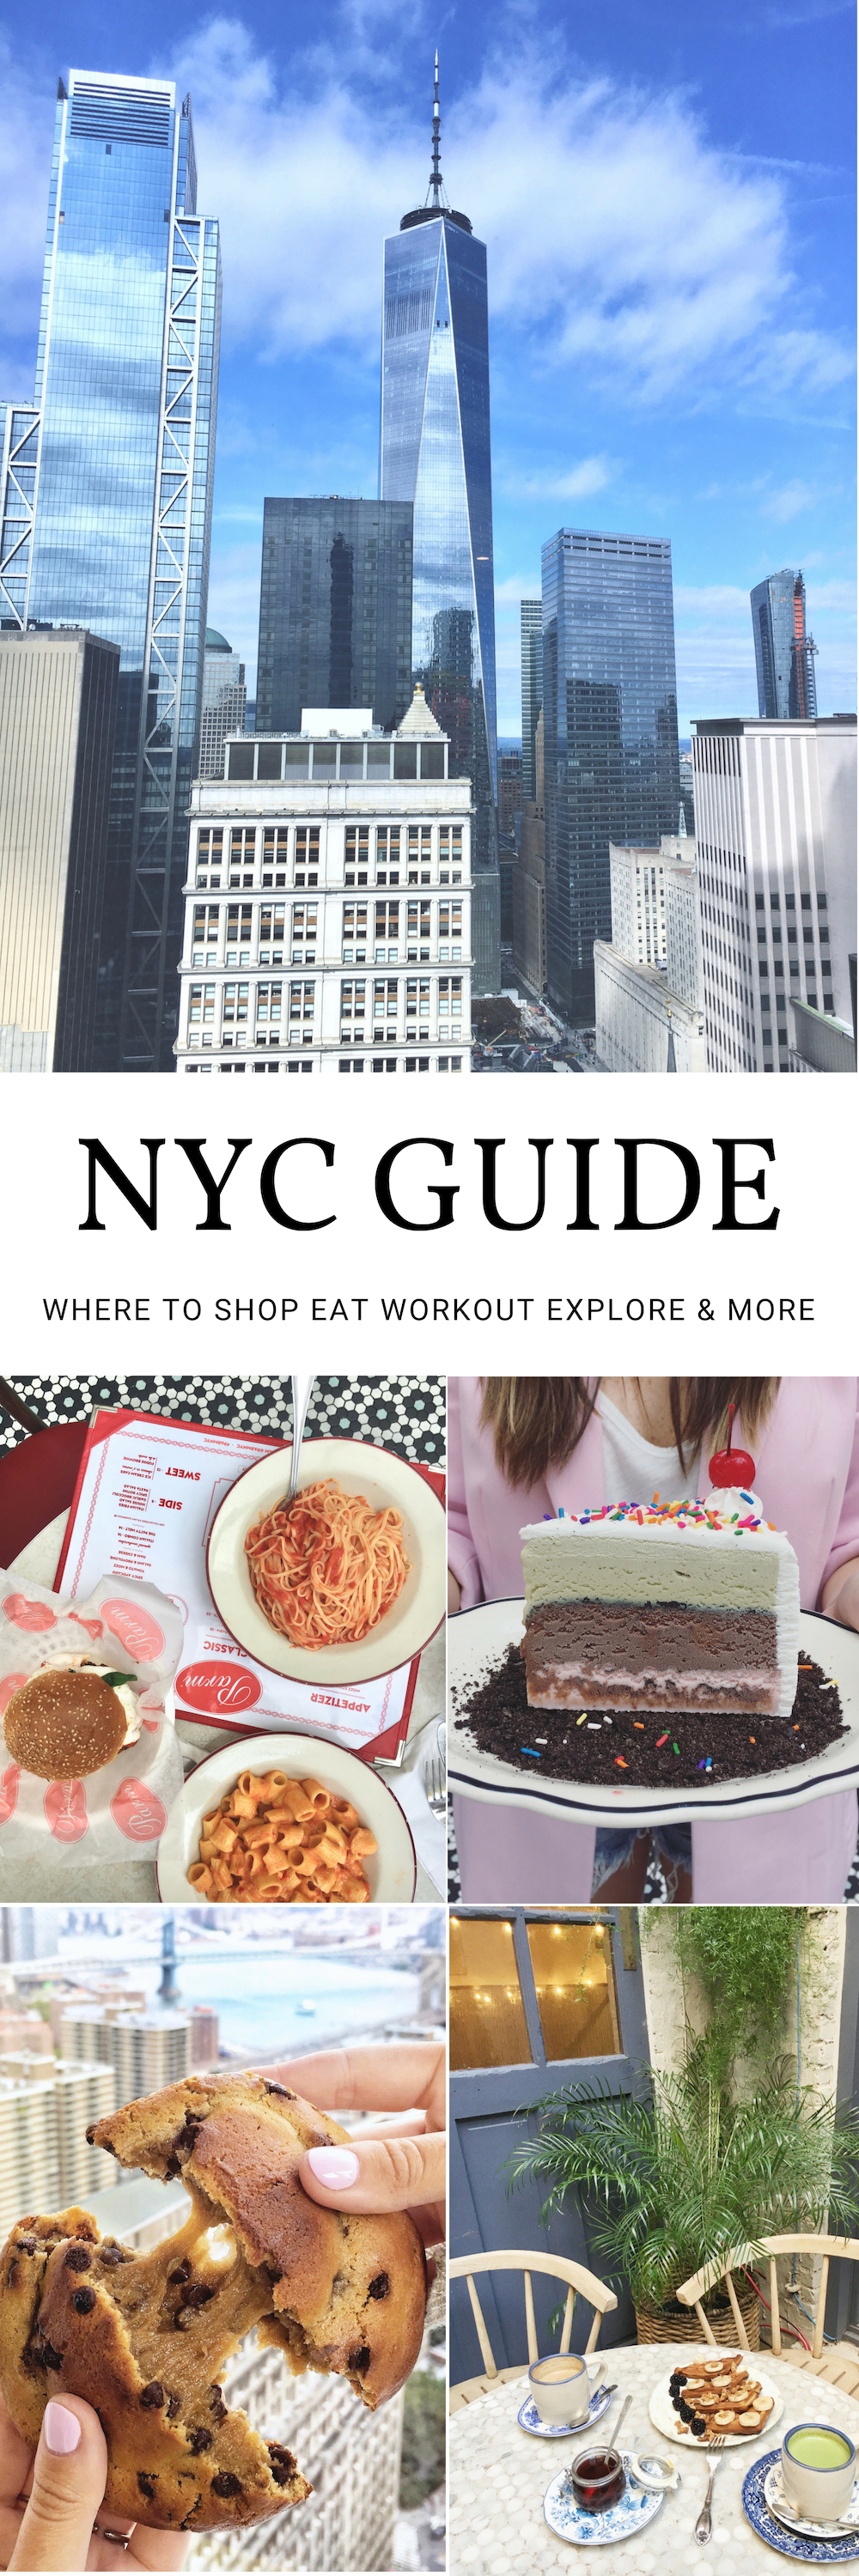 NYC GUIDE